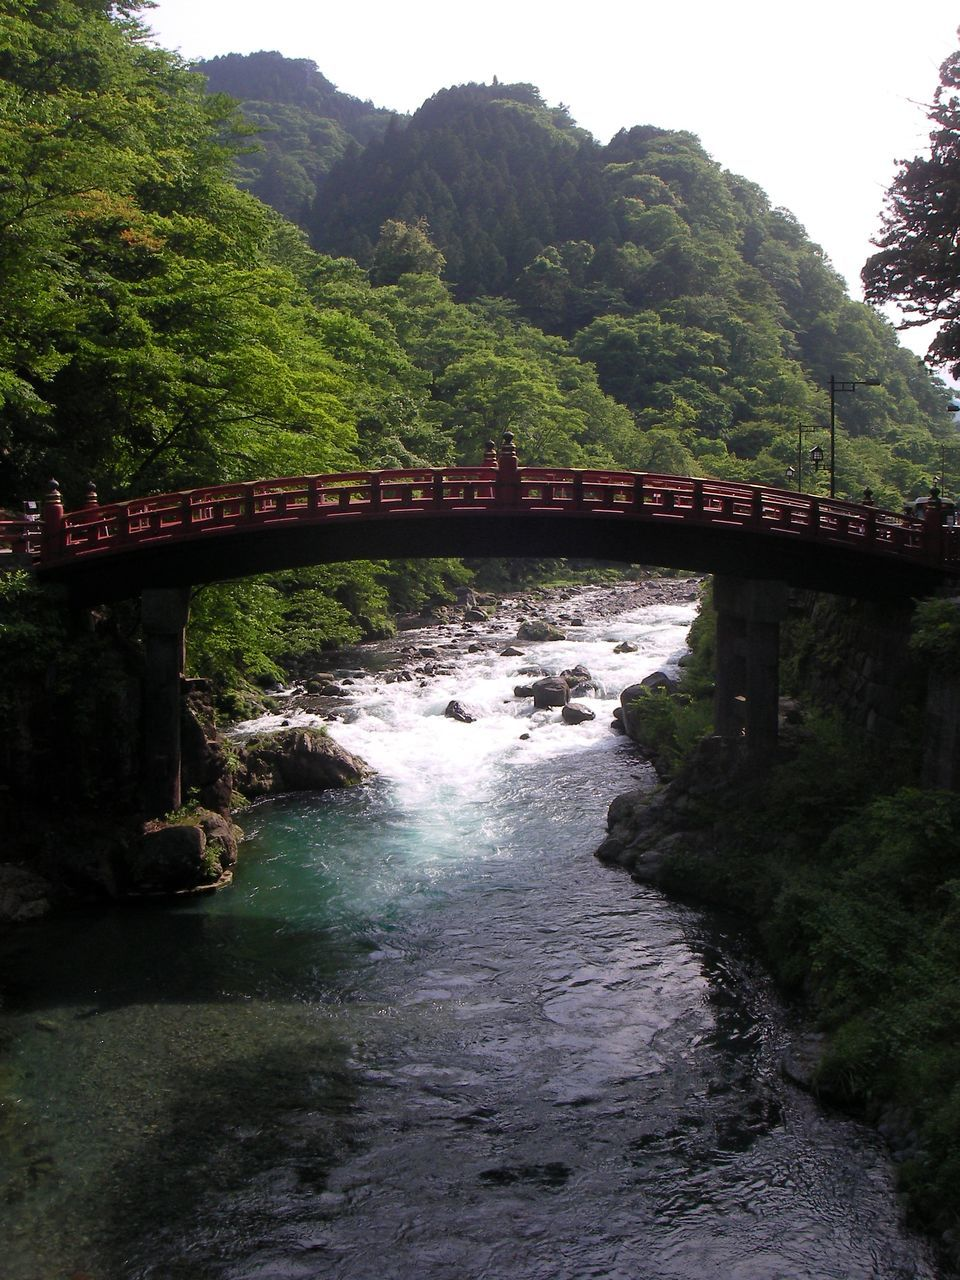 bridge - man made structure, connection, river, water, tree, day, nature, built structure, outdoors, arch, architecture, mountain, transportation, no people, forest, beauty in nature, growth, scenics, footbridge, sky